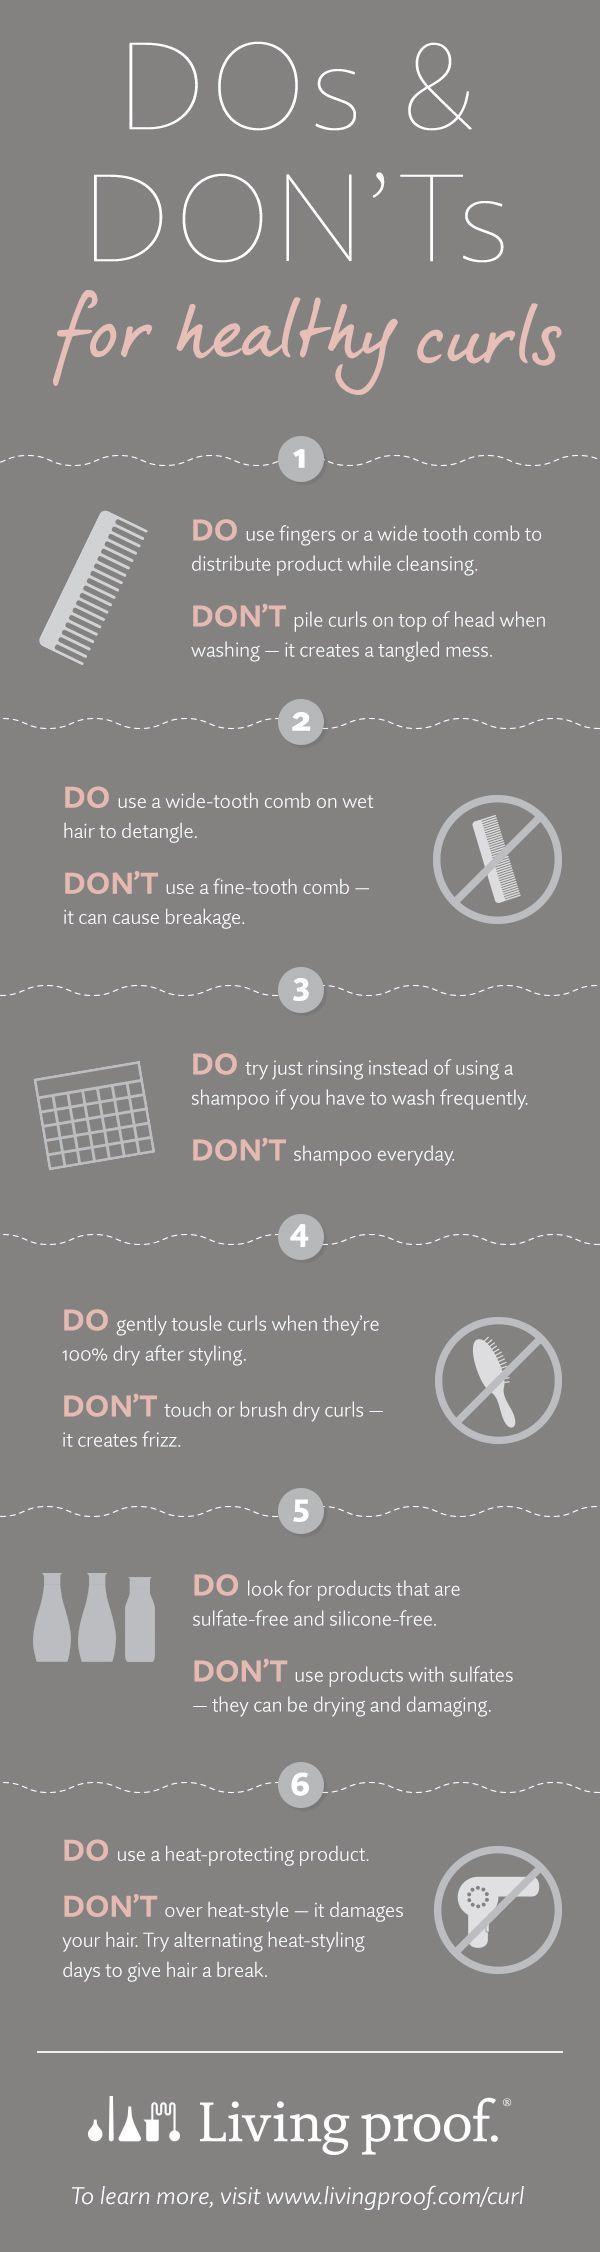 Got naturally curly hair? Here are the do's and don'ts for keeping your curls…